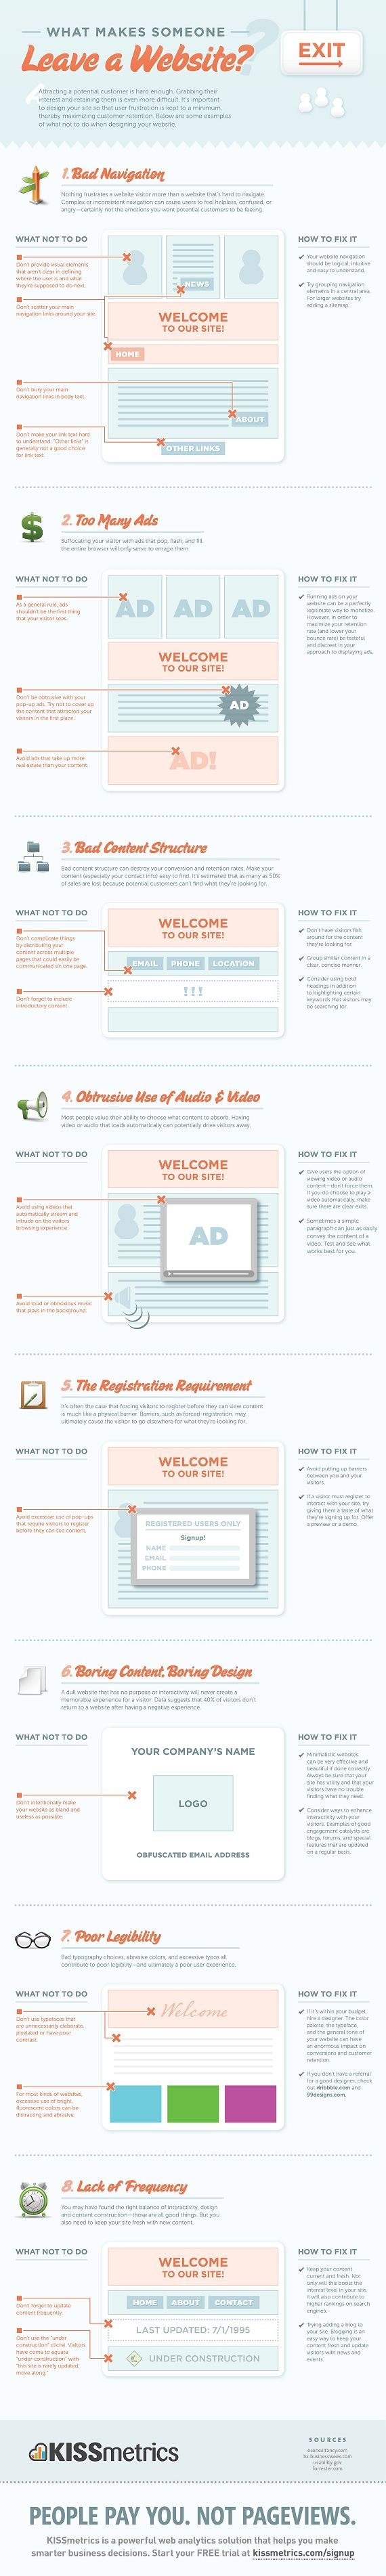 What Makes Someone Leave A Website? How to keep people on your website longer Infographic www.socialmediamamma.com Come join my FREE Webinar... How to MAKE MONEY with Pinterest   http://socialmediamamma.com/free-webinar-make-money-with-pinterest-for-business/  Can't make the date don't worry, just register and I'll send you the replay